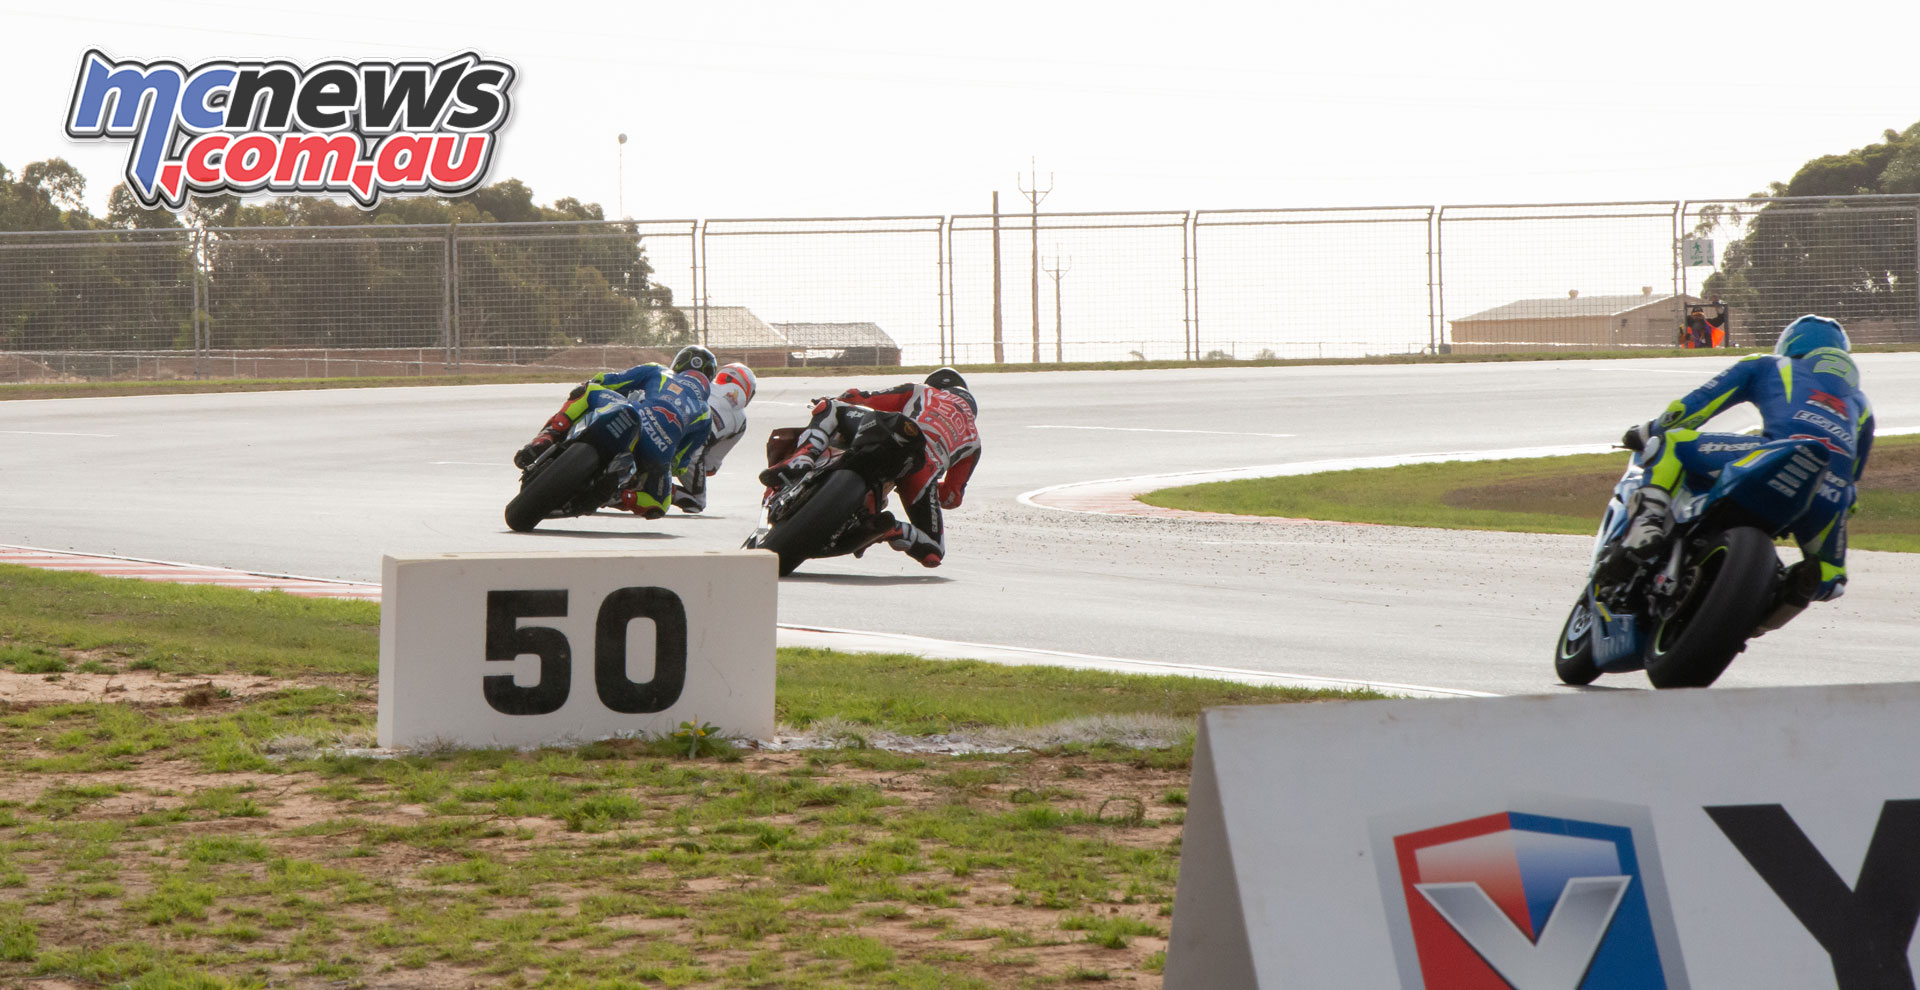 ASBK Rnd The Bend RbMotoLens SBK R Mike JONES Leads Wayne MAXWELL Mark CHIODO